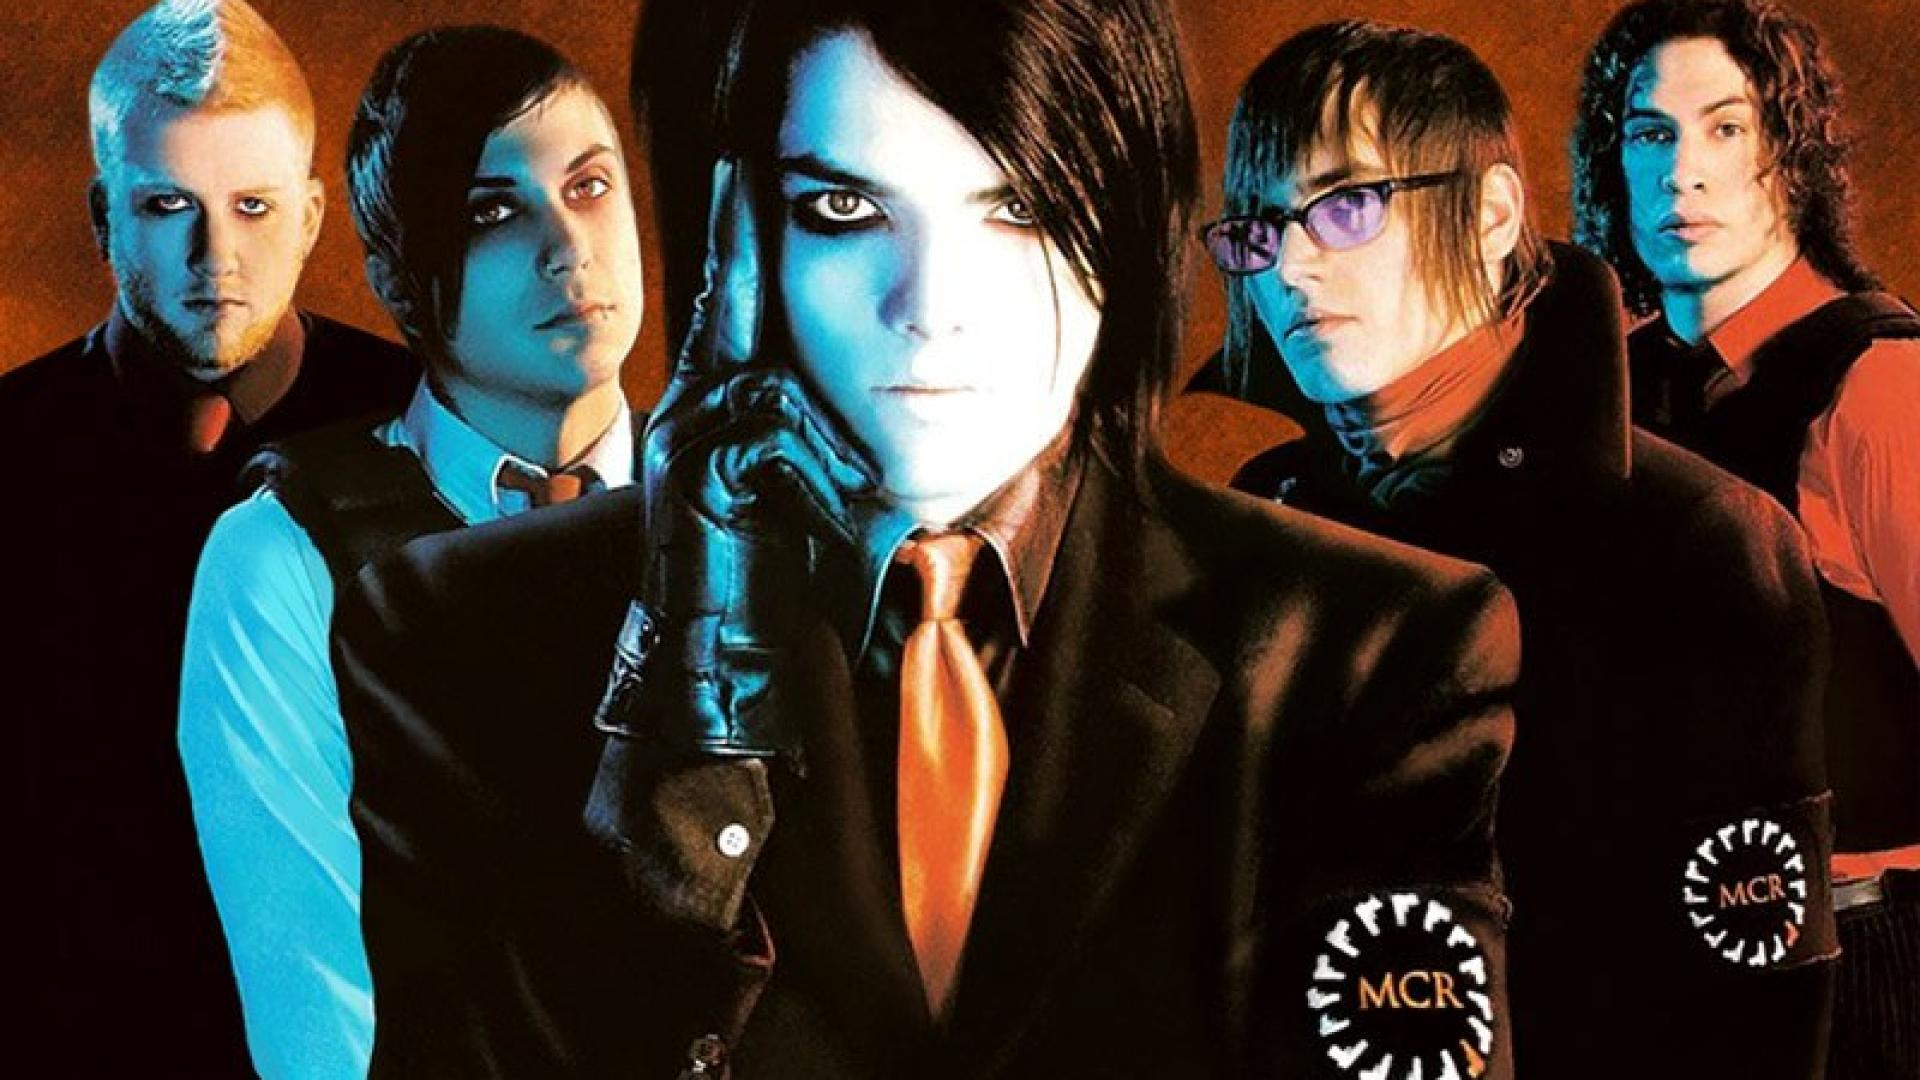 HD My Chemical Romance Wallpapers 1920x1080